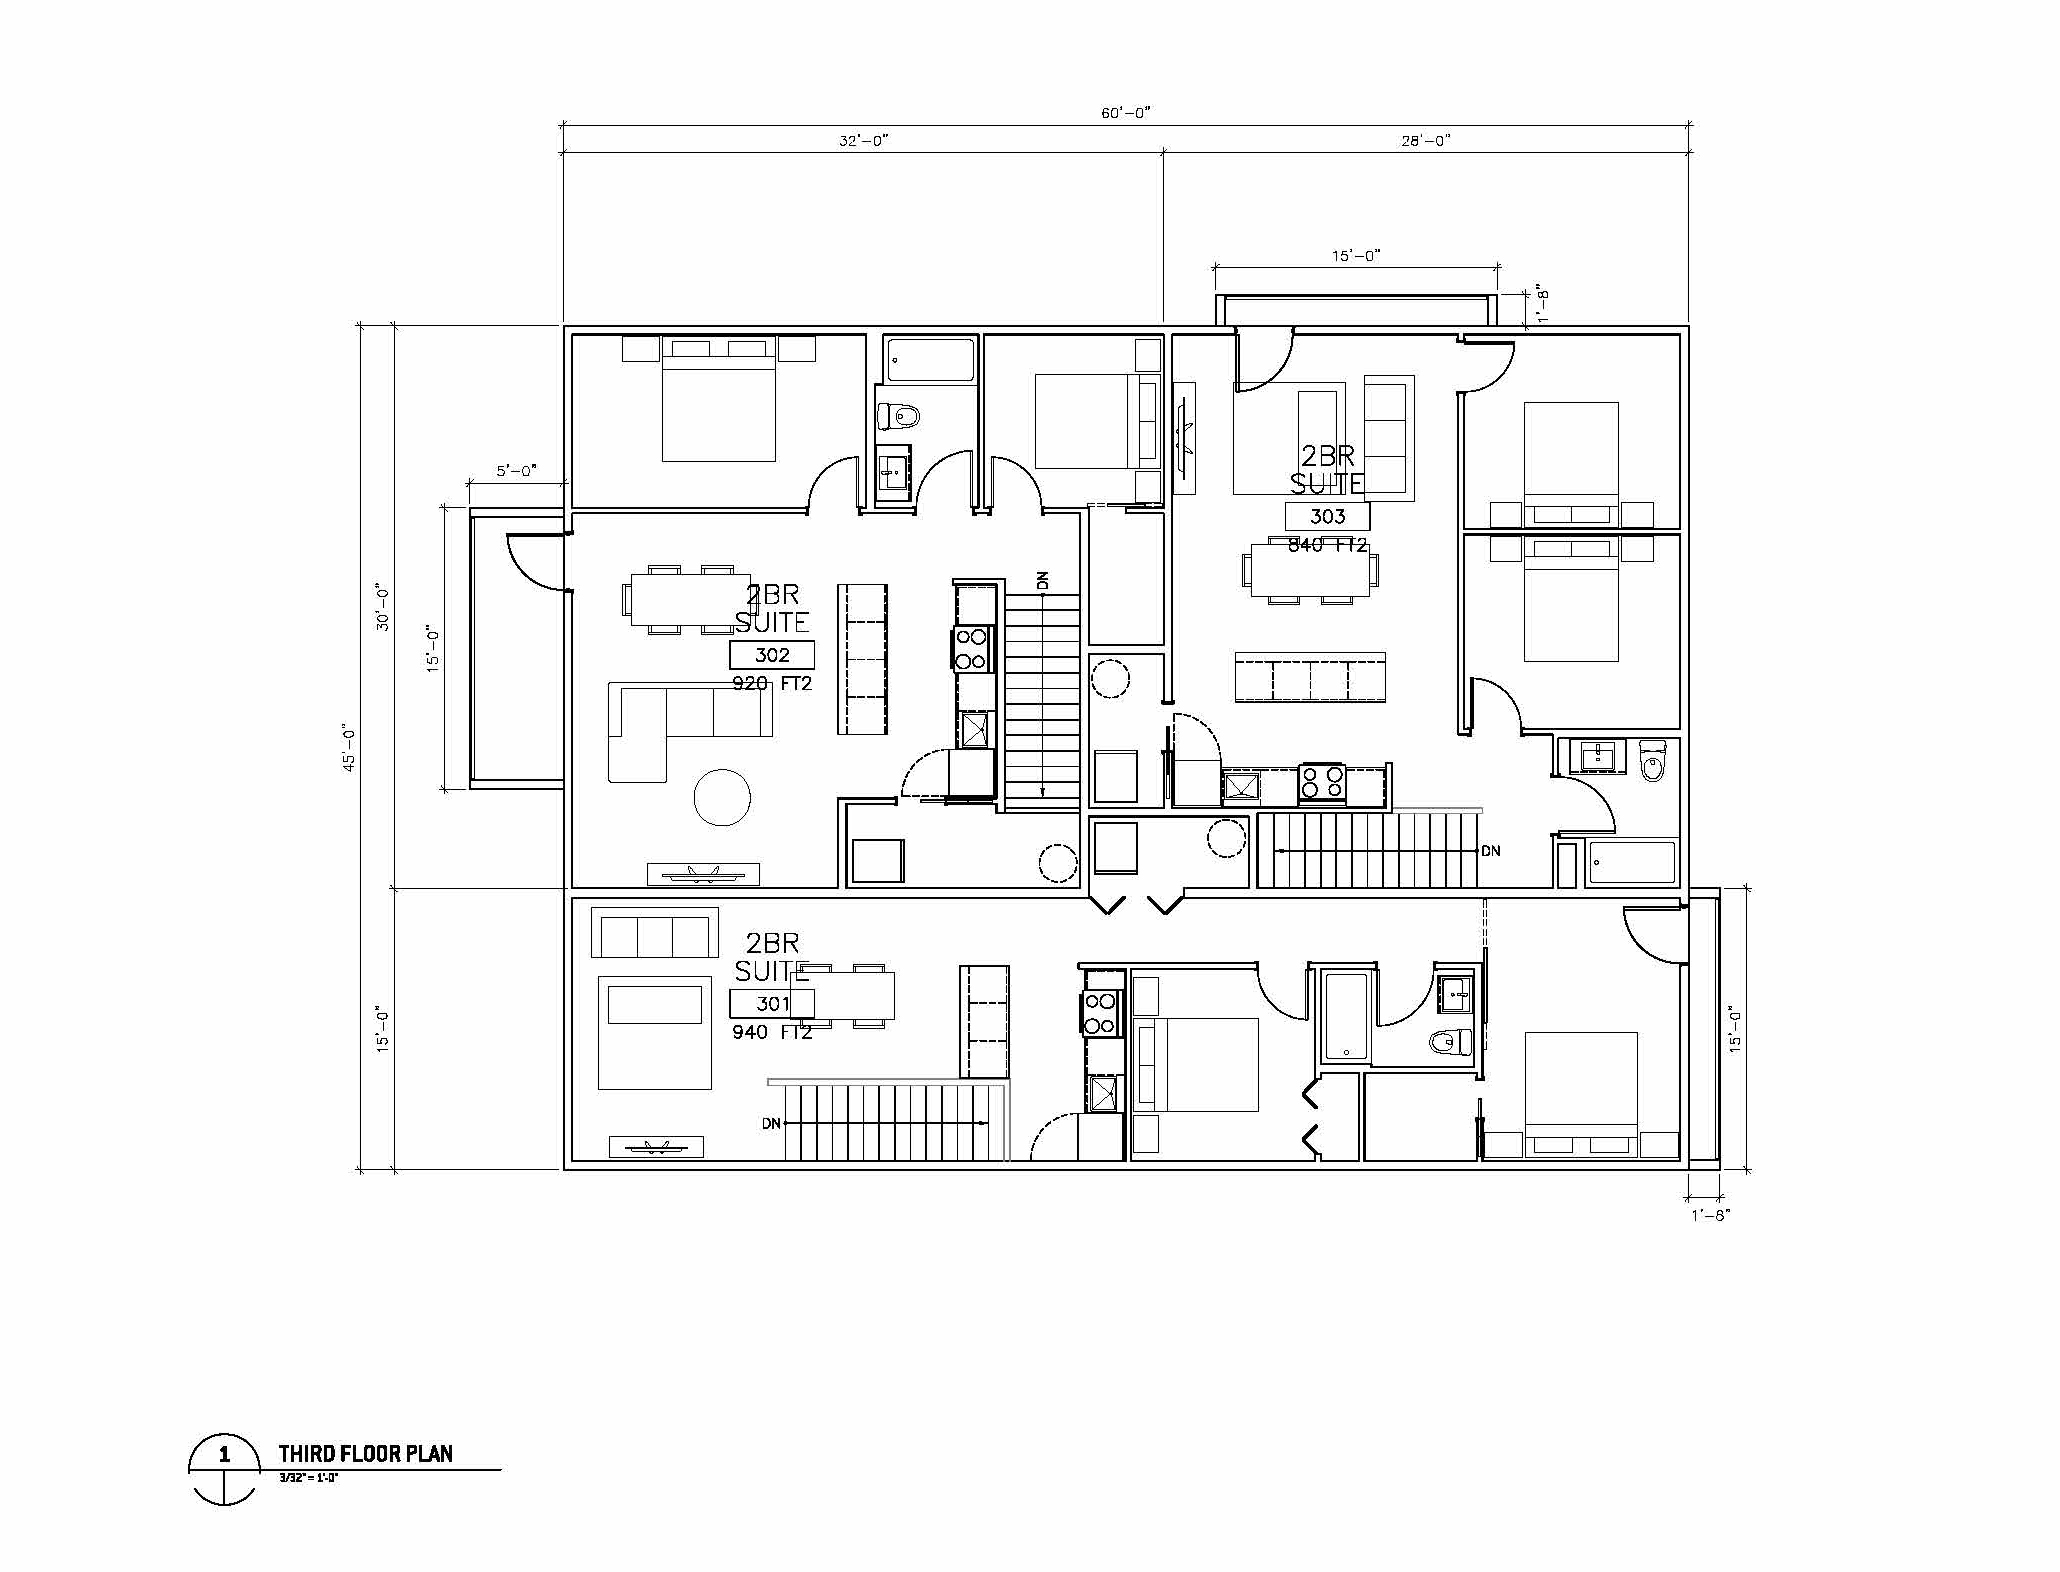 93_stannes_drawing-package_161129_Page_3.jpg